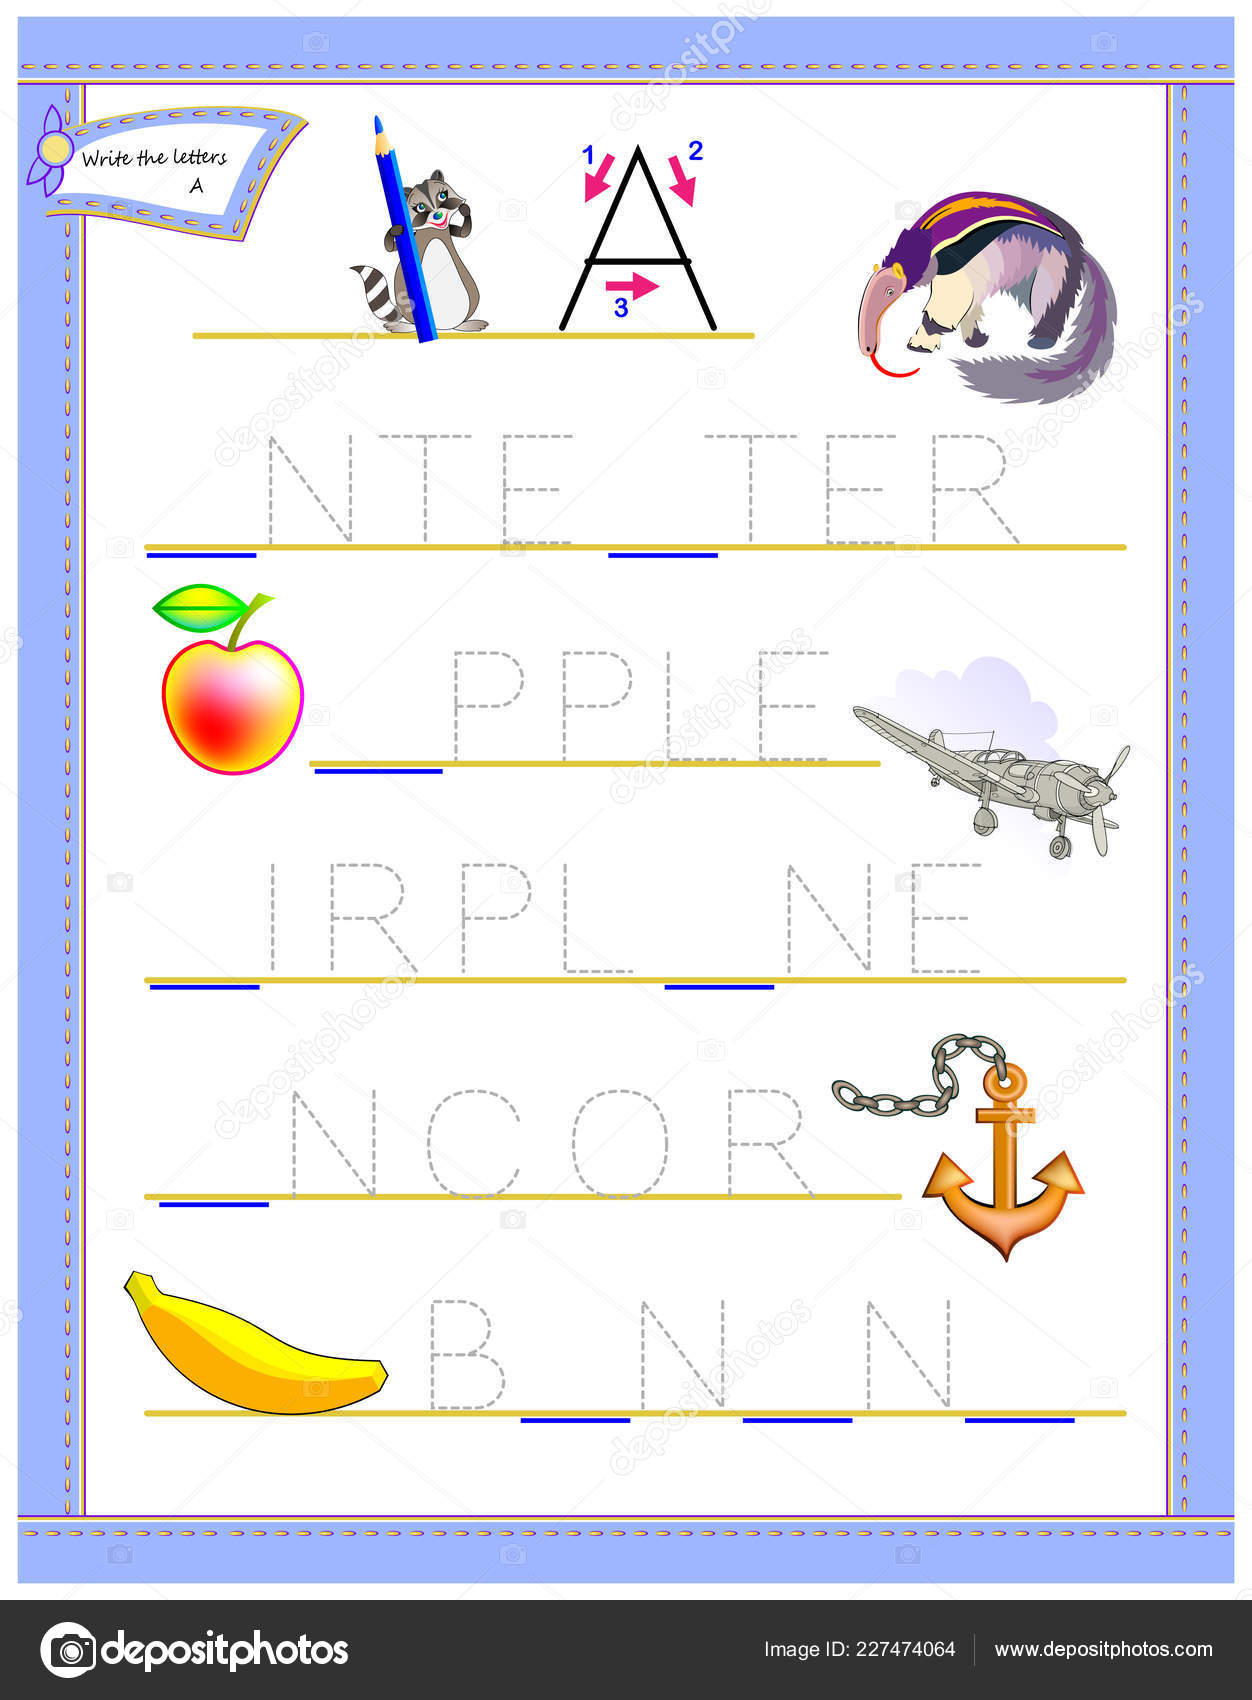 Tracing Letter Study English Alphabet Worksheet Kids Logic